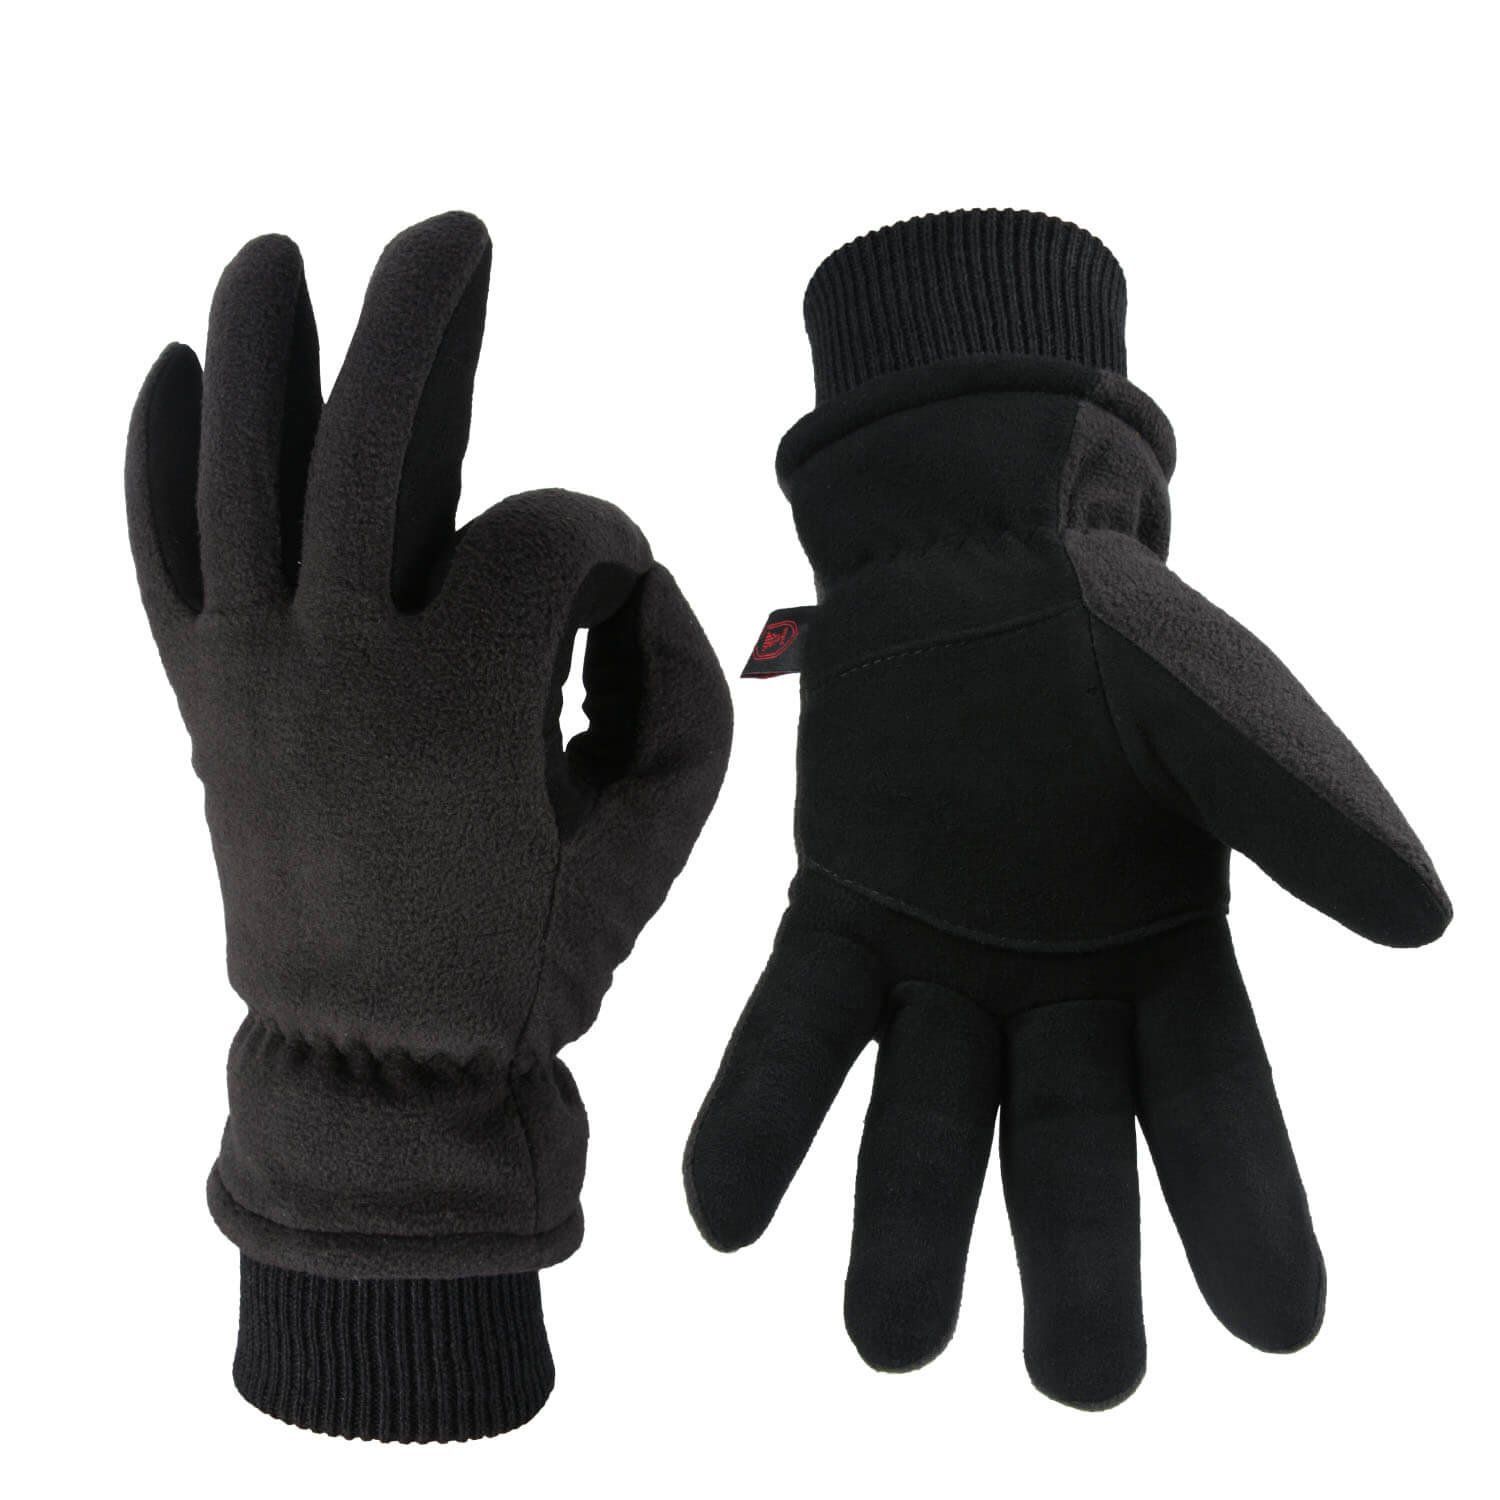 OZERO Winter Gloves Coldproof Snow Work Glove - Deerskin Leather Palm & Polar Fleece Back Insulated Cotton - Windproof Water-Resistant Warm Hands in Cold Weather Women Men - Denim(L)